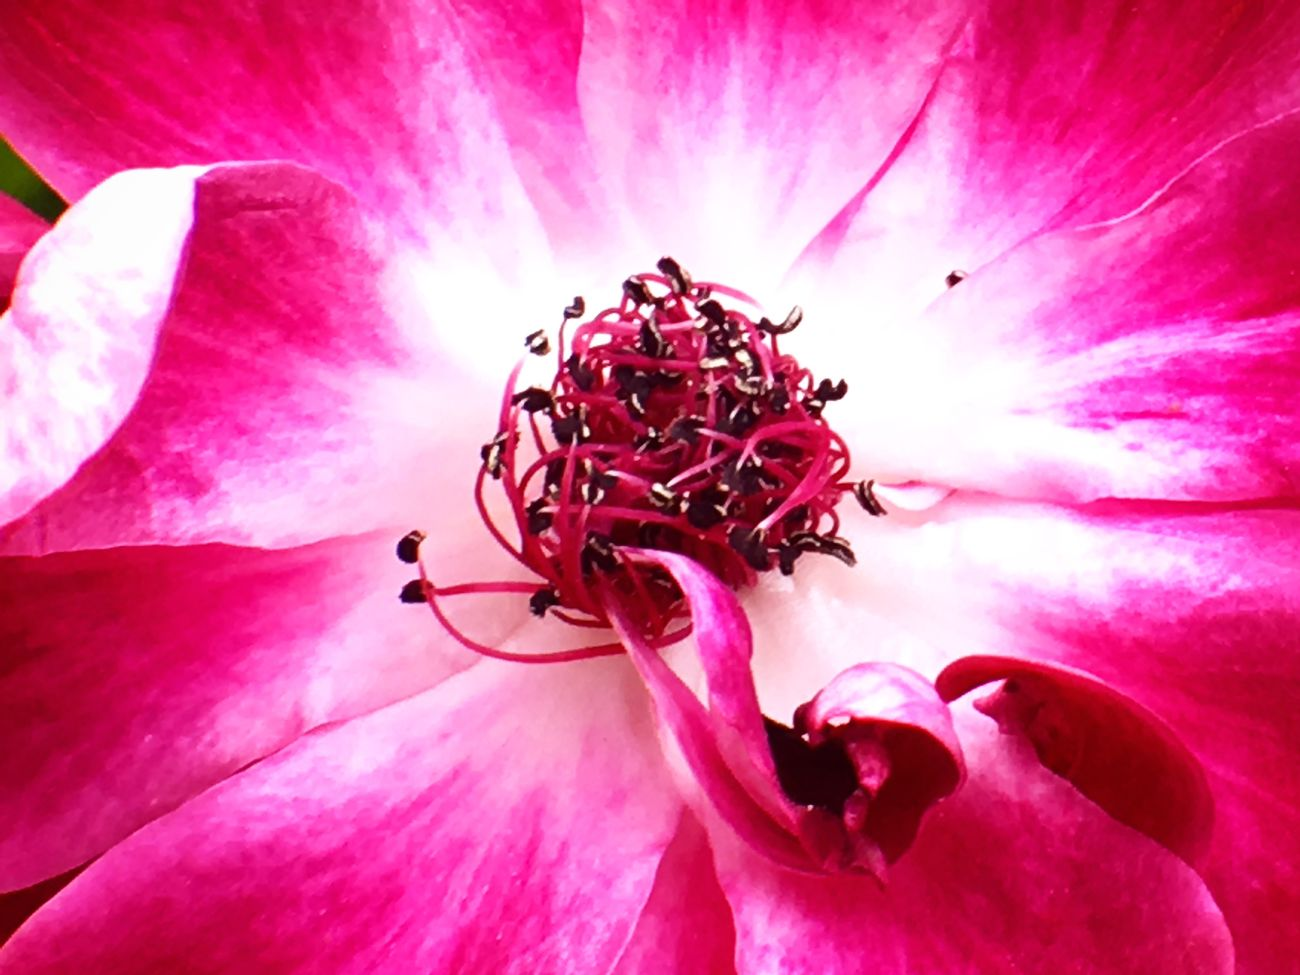 Flower Petal Fragility Beauty In Nature Freshness Nature Flower Head Growth Pollen Pink Color Outdoors Close-up Blooming Day No People Backgrounds Maroon